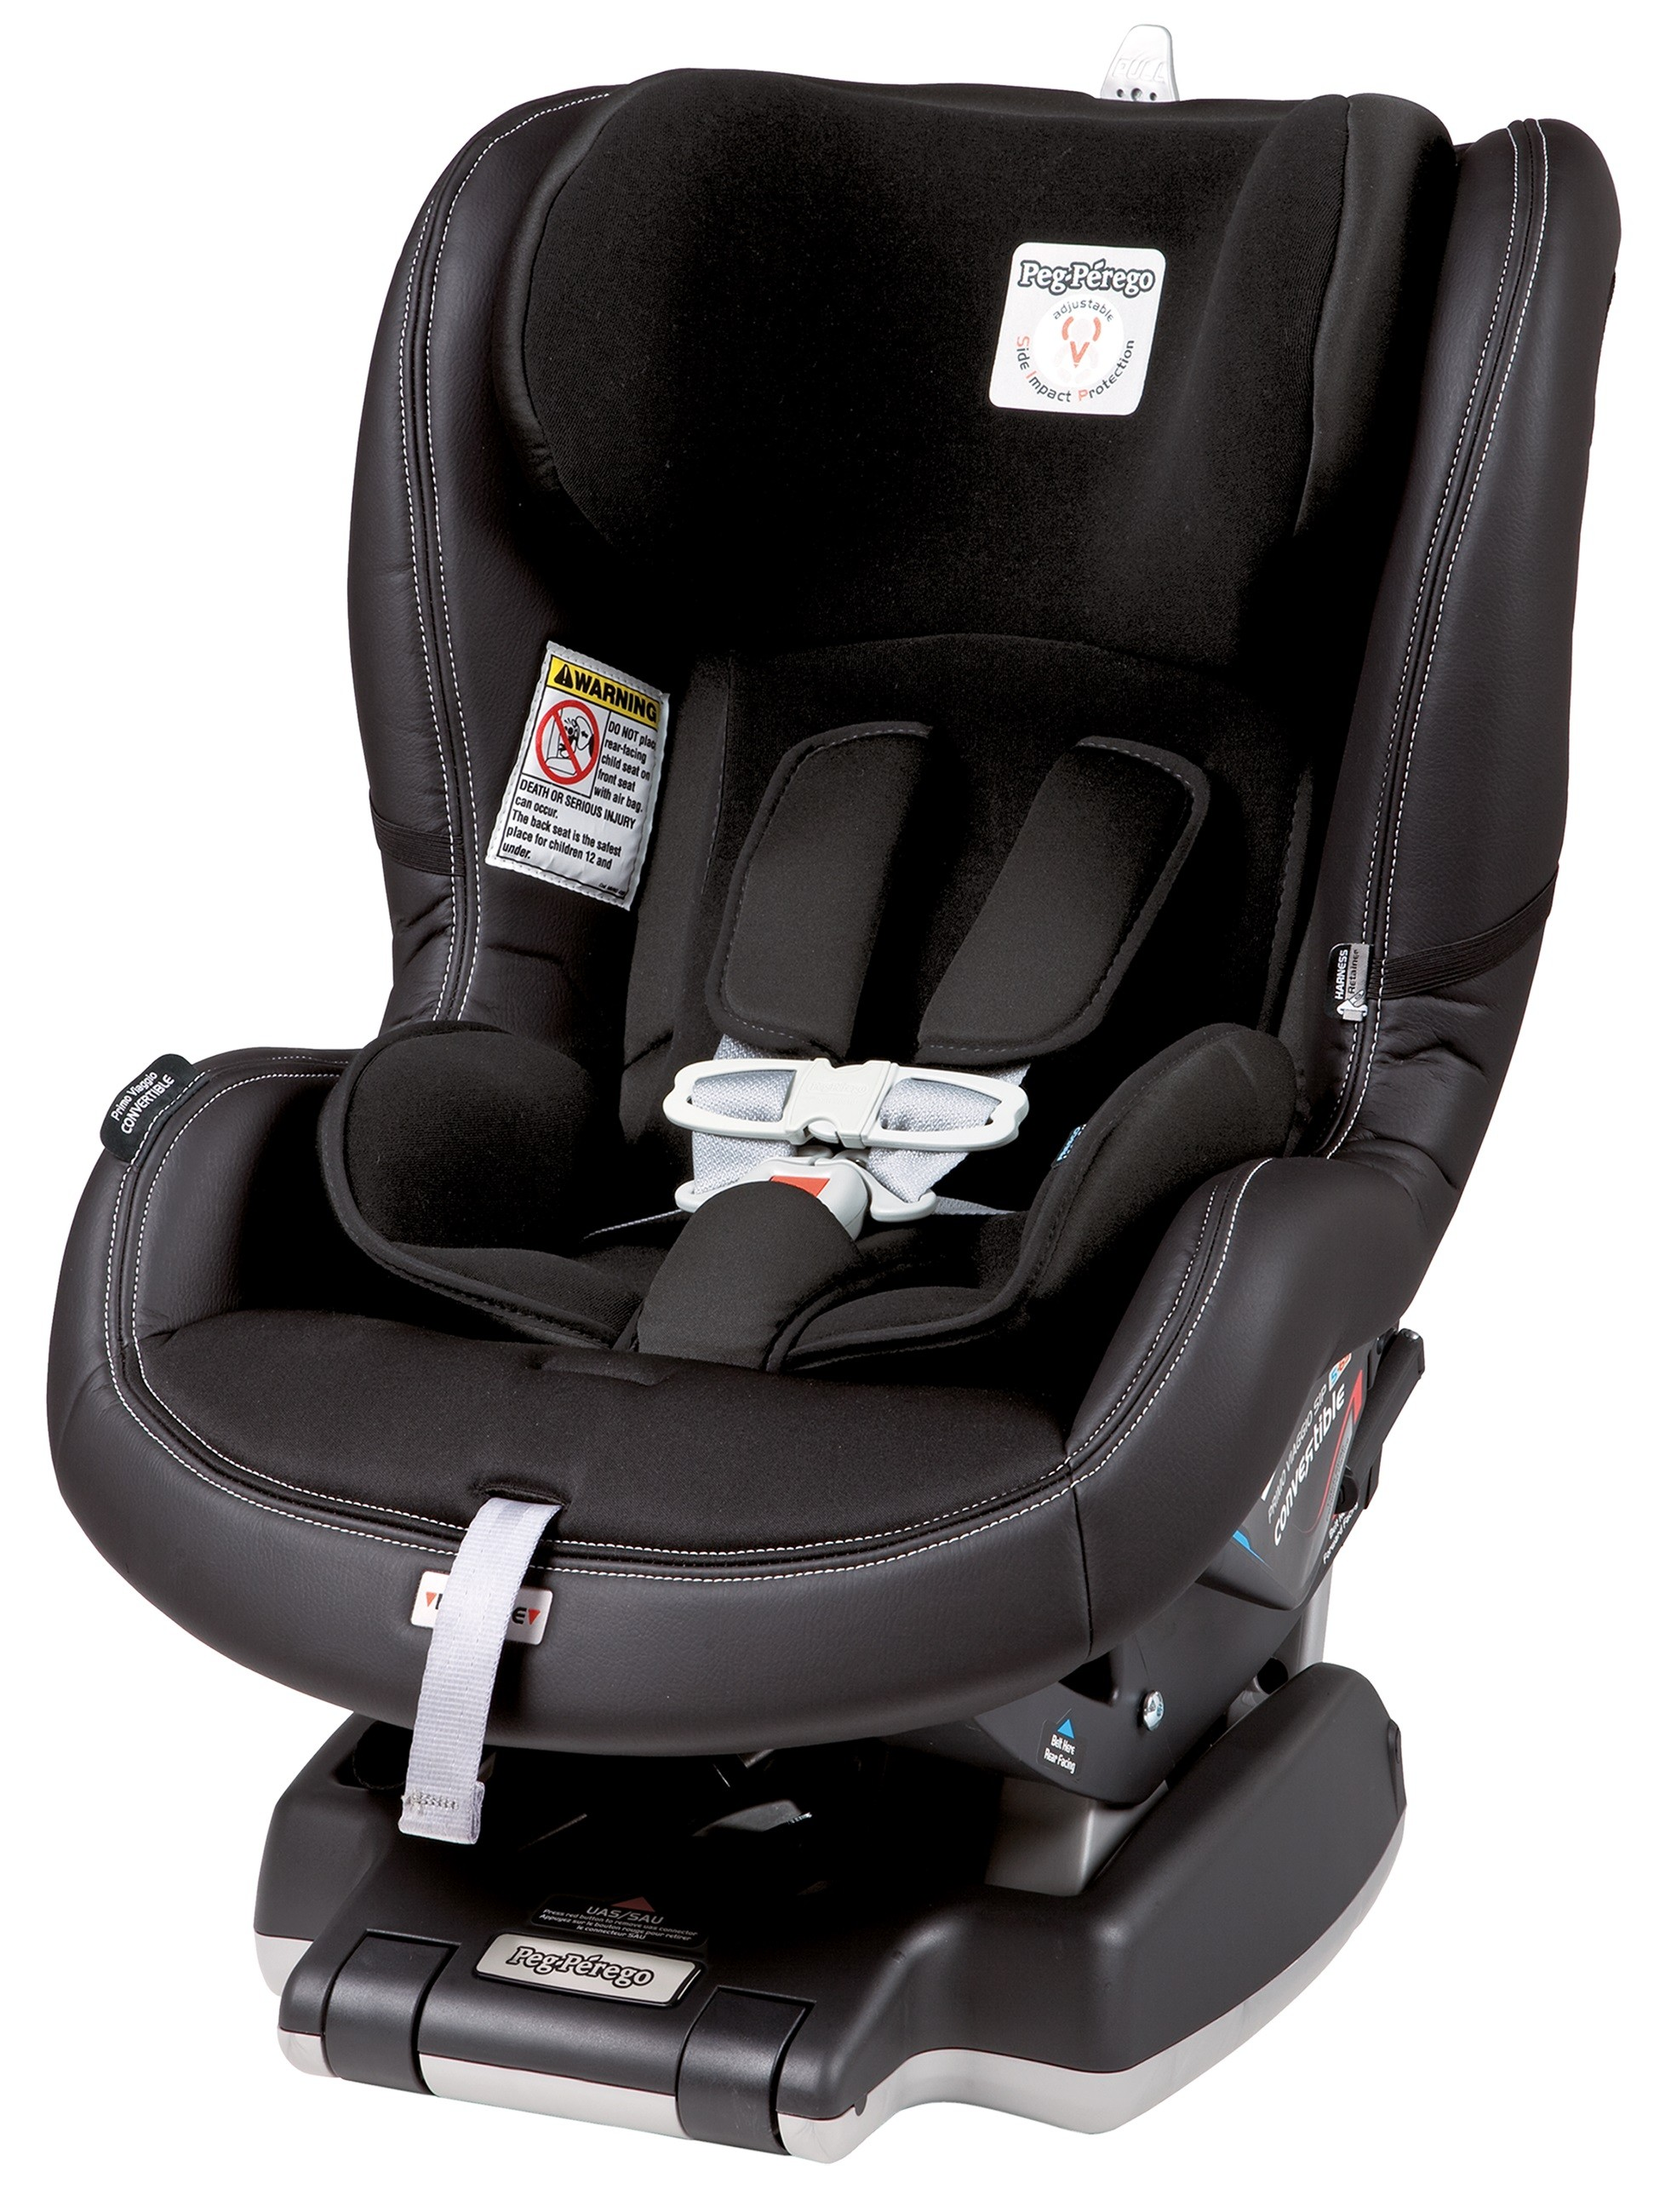 Peg Perego Convertible Car Seat Leather